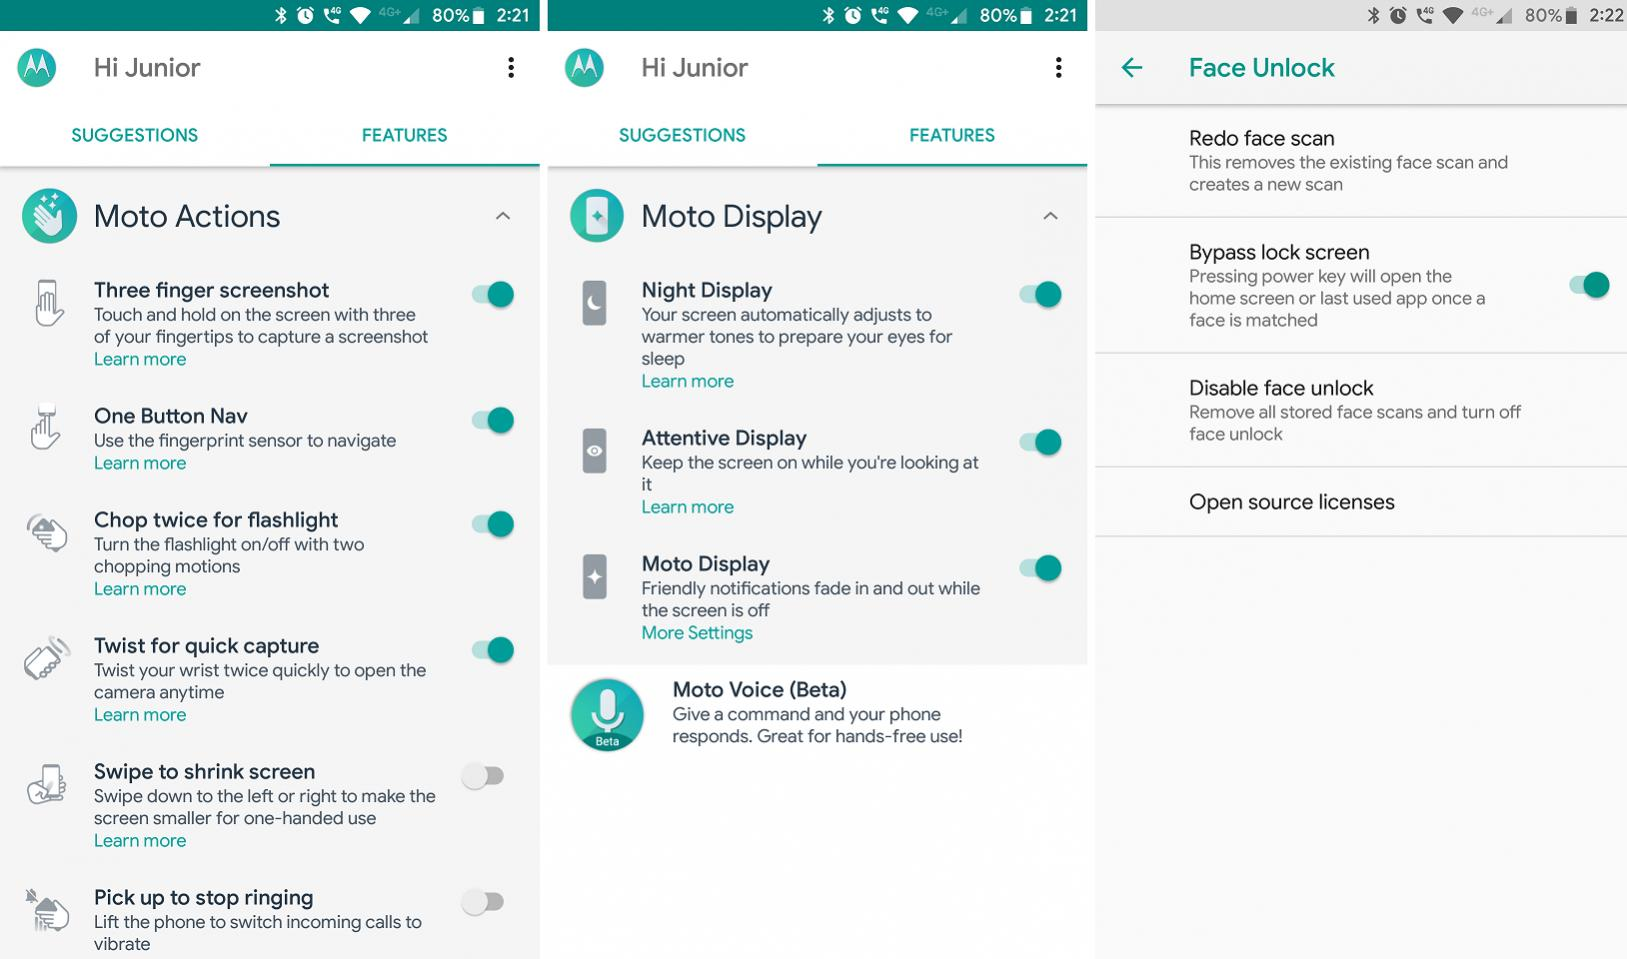 Get New Moto Z3 Play And Moto G6 Apps On The Moto Z2 Play